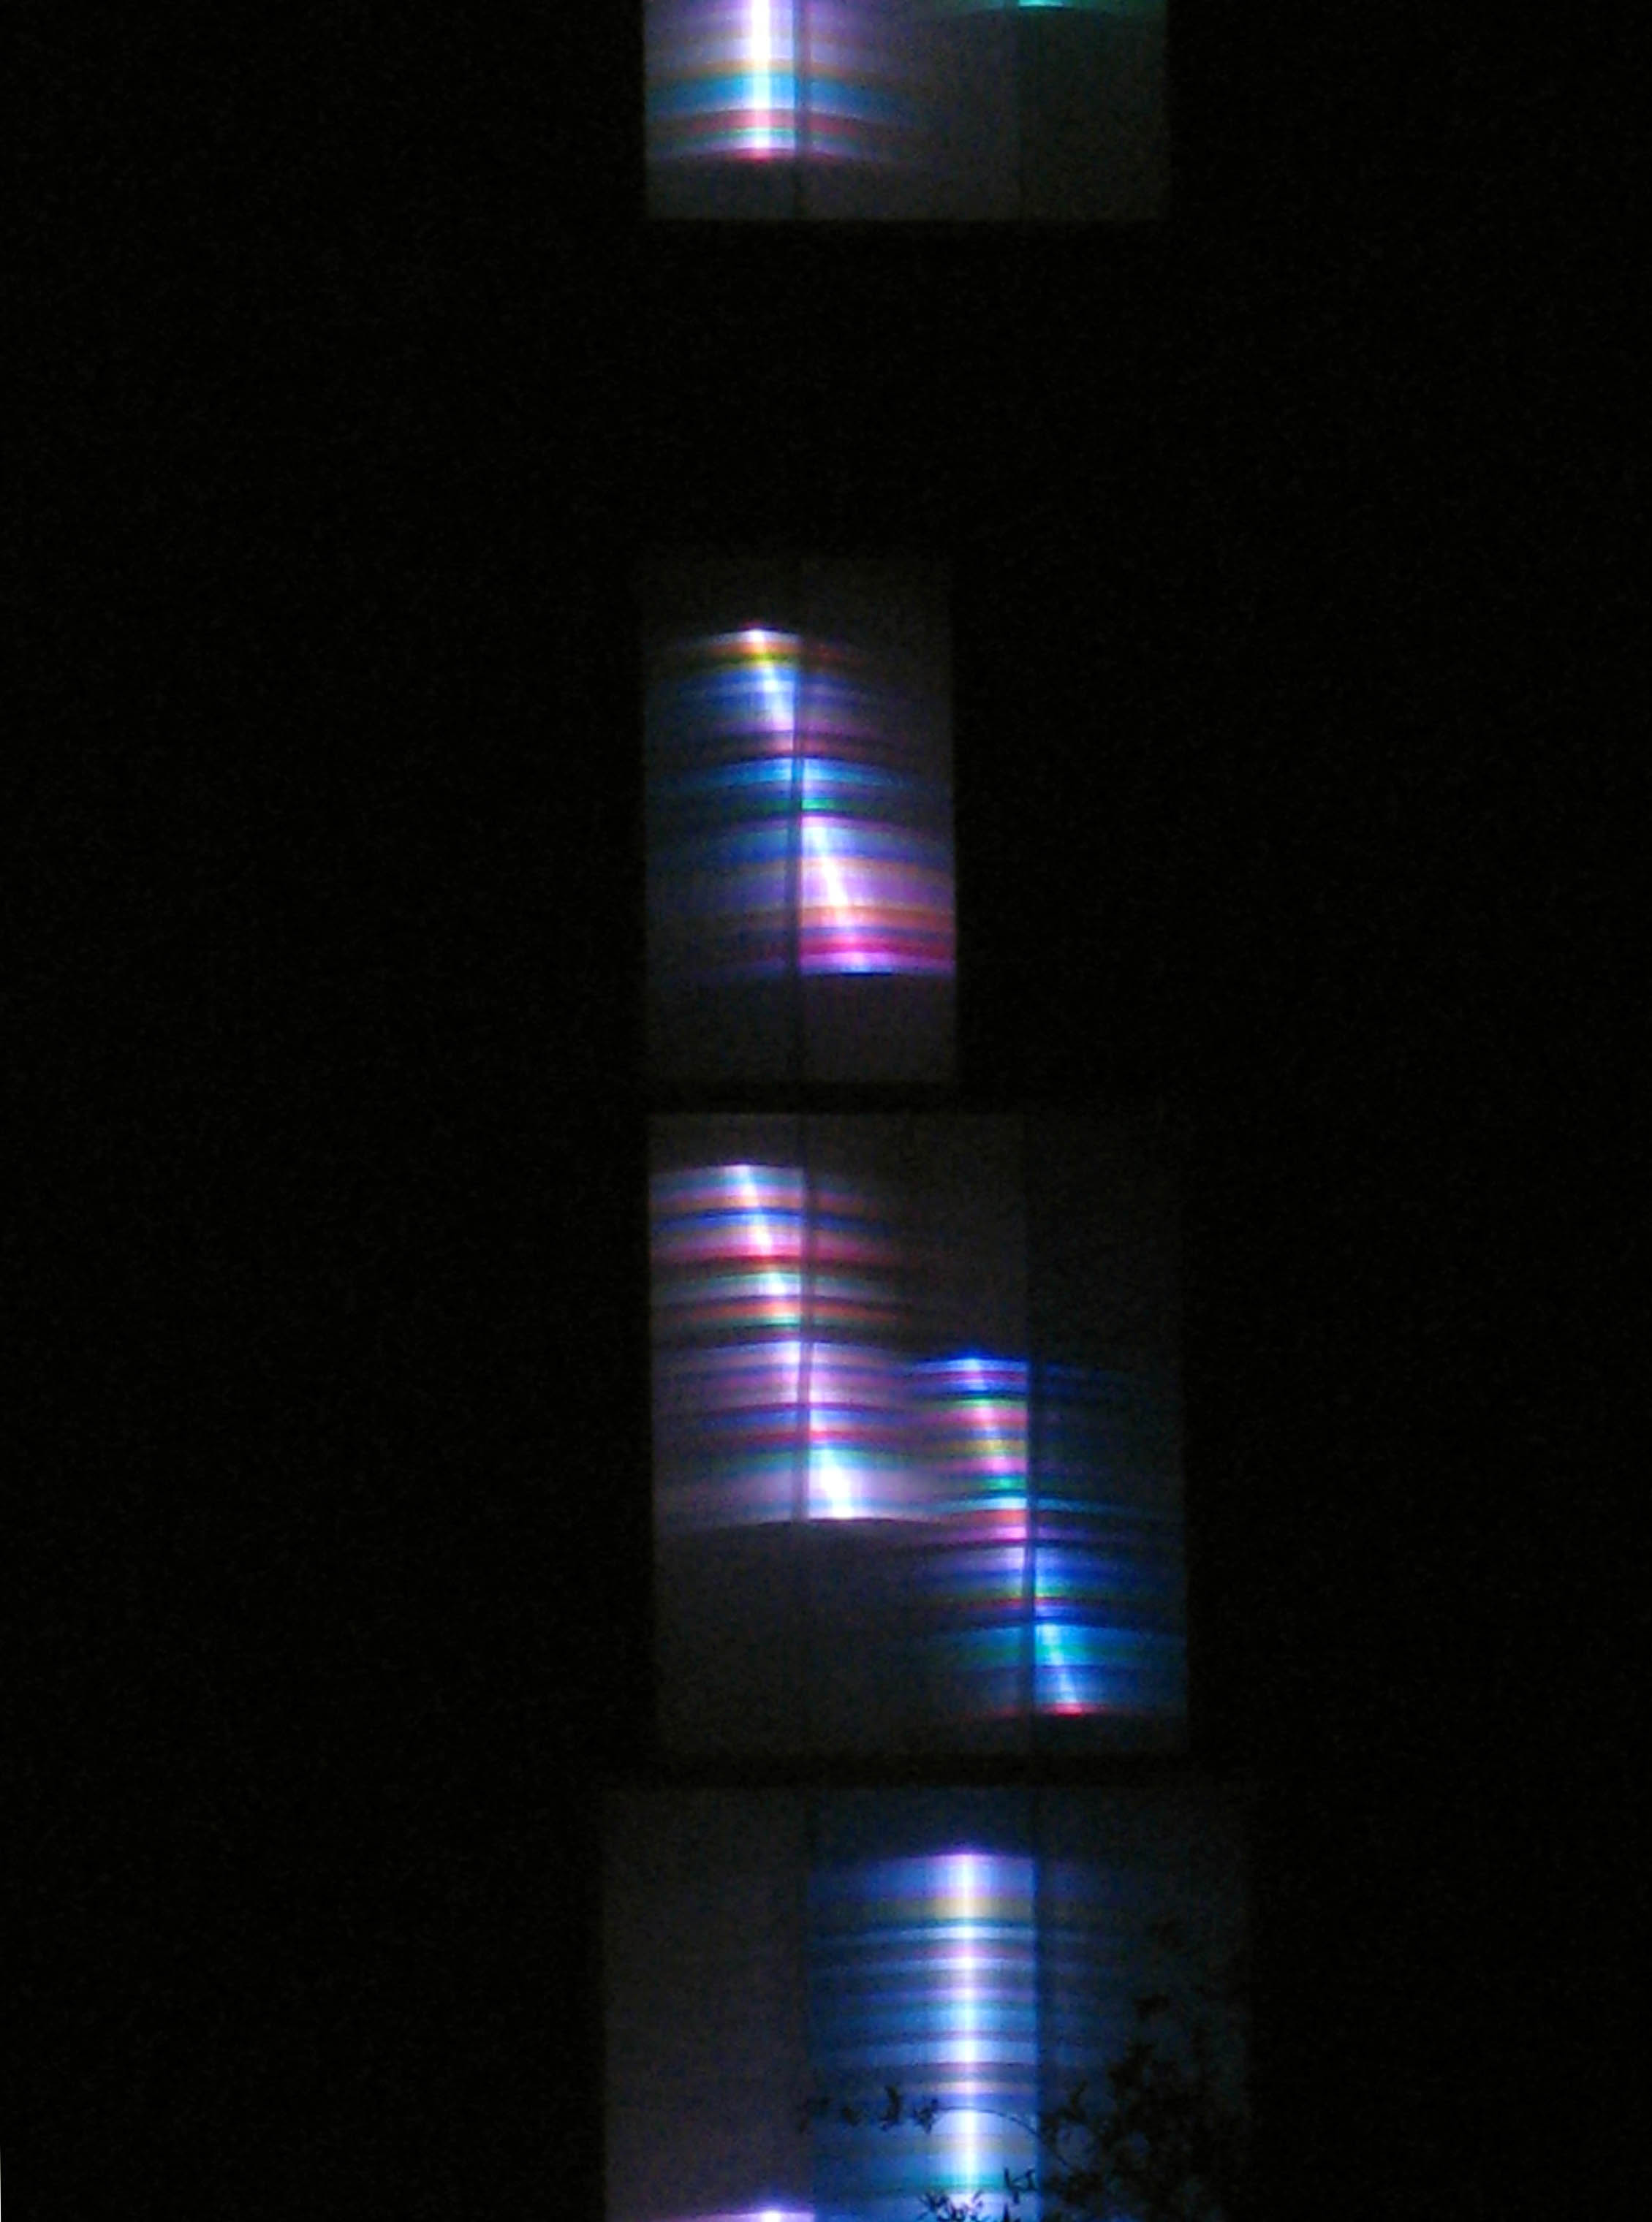 One and Many, Woven Light Two Towers Tall, Skypoint Tower, Overlooking Tampa Museum of Art. Public Art Commission, Florida 2007-  Two - 100' x 14 x 4' Tinted Reflective, Greenhouse Polycarbonates, Steel, Aluminum, Billion Color Continuously Changing Programmed LED Light